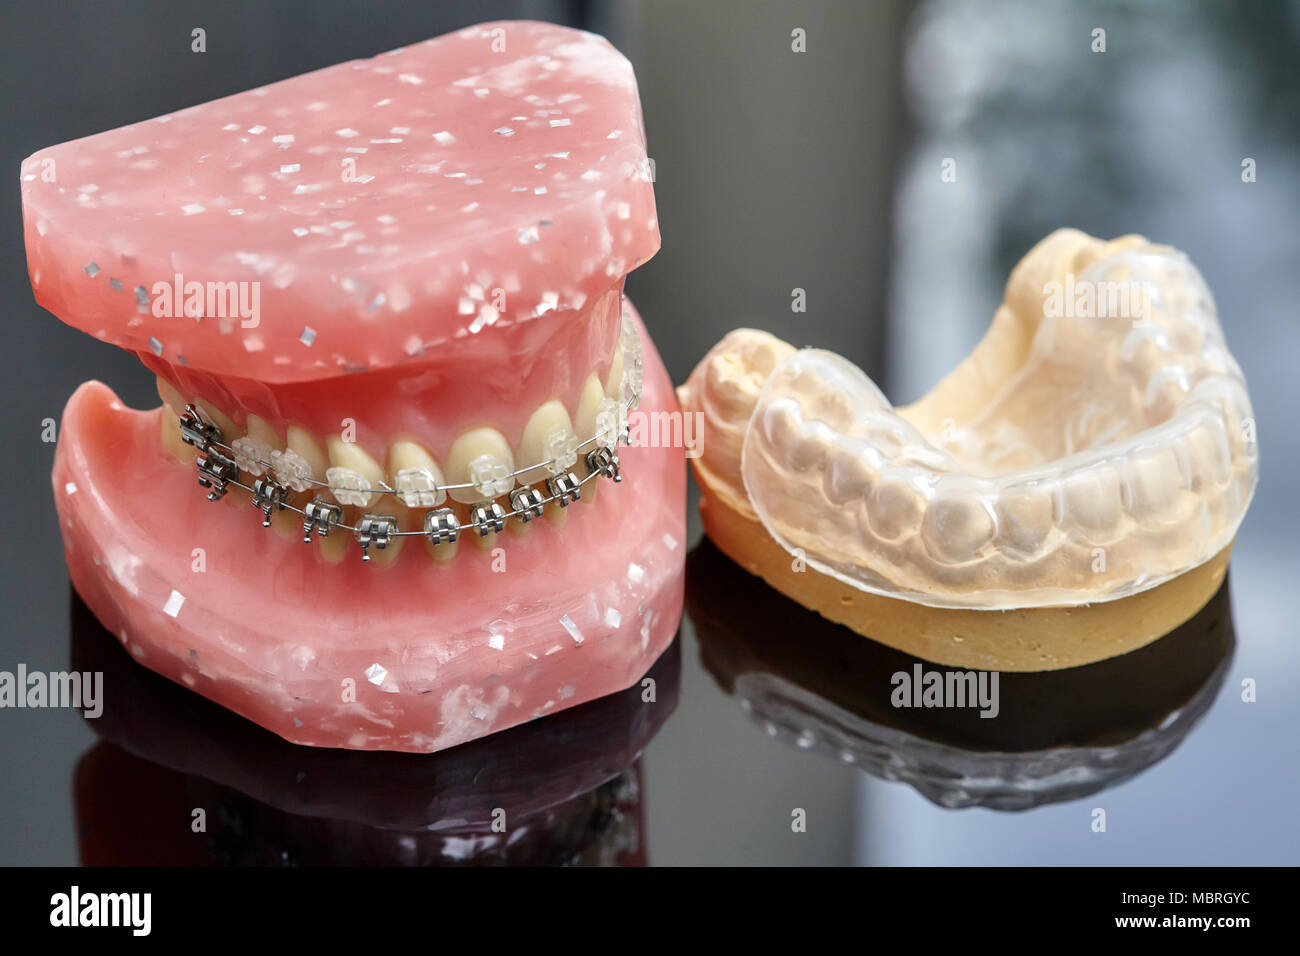 Human jaw or teeth model with metal wired dental braces and closeup ...